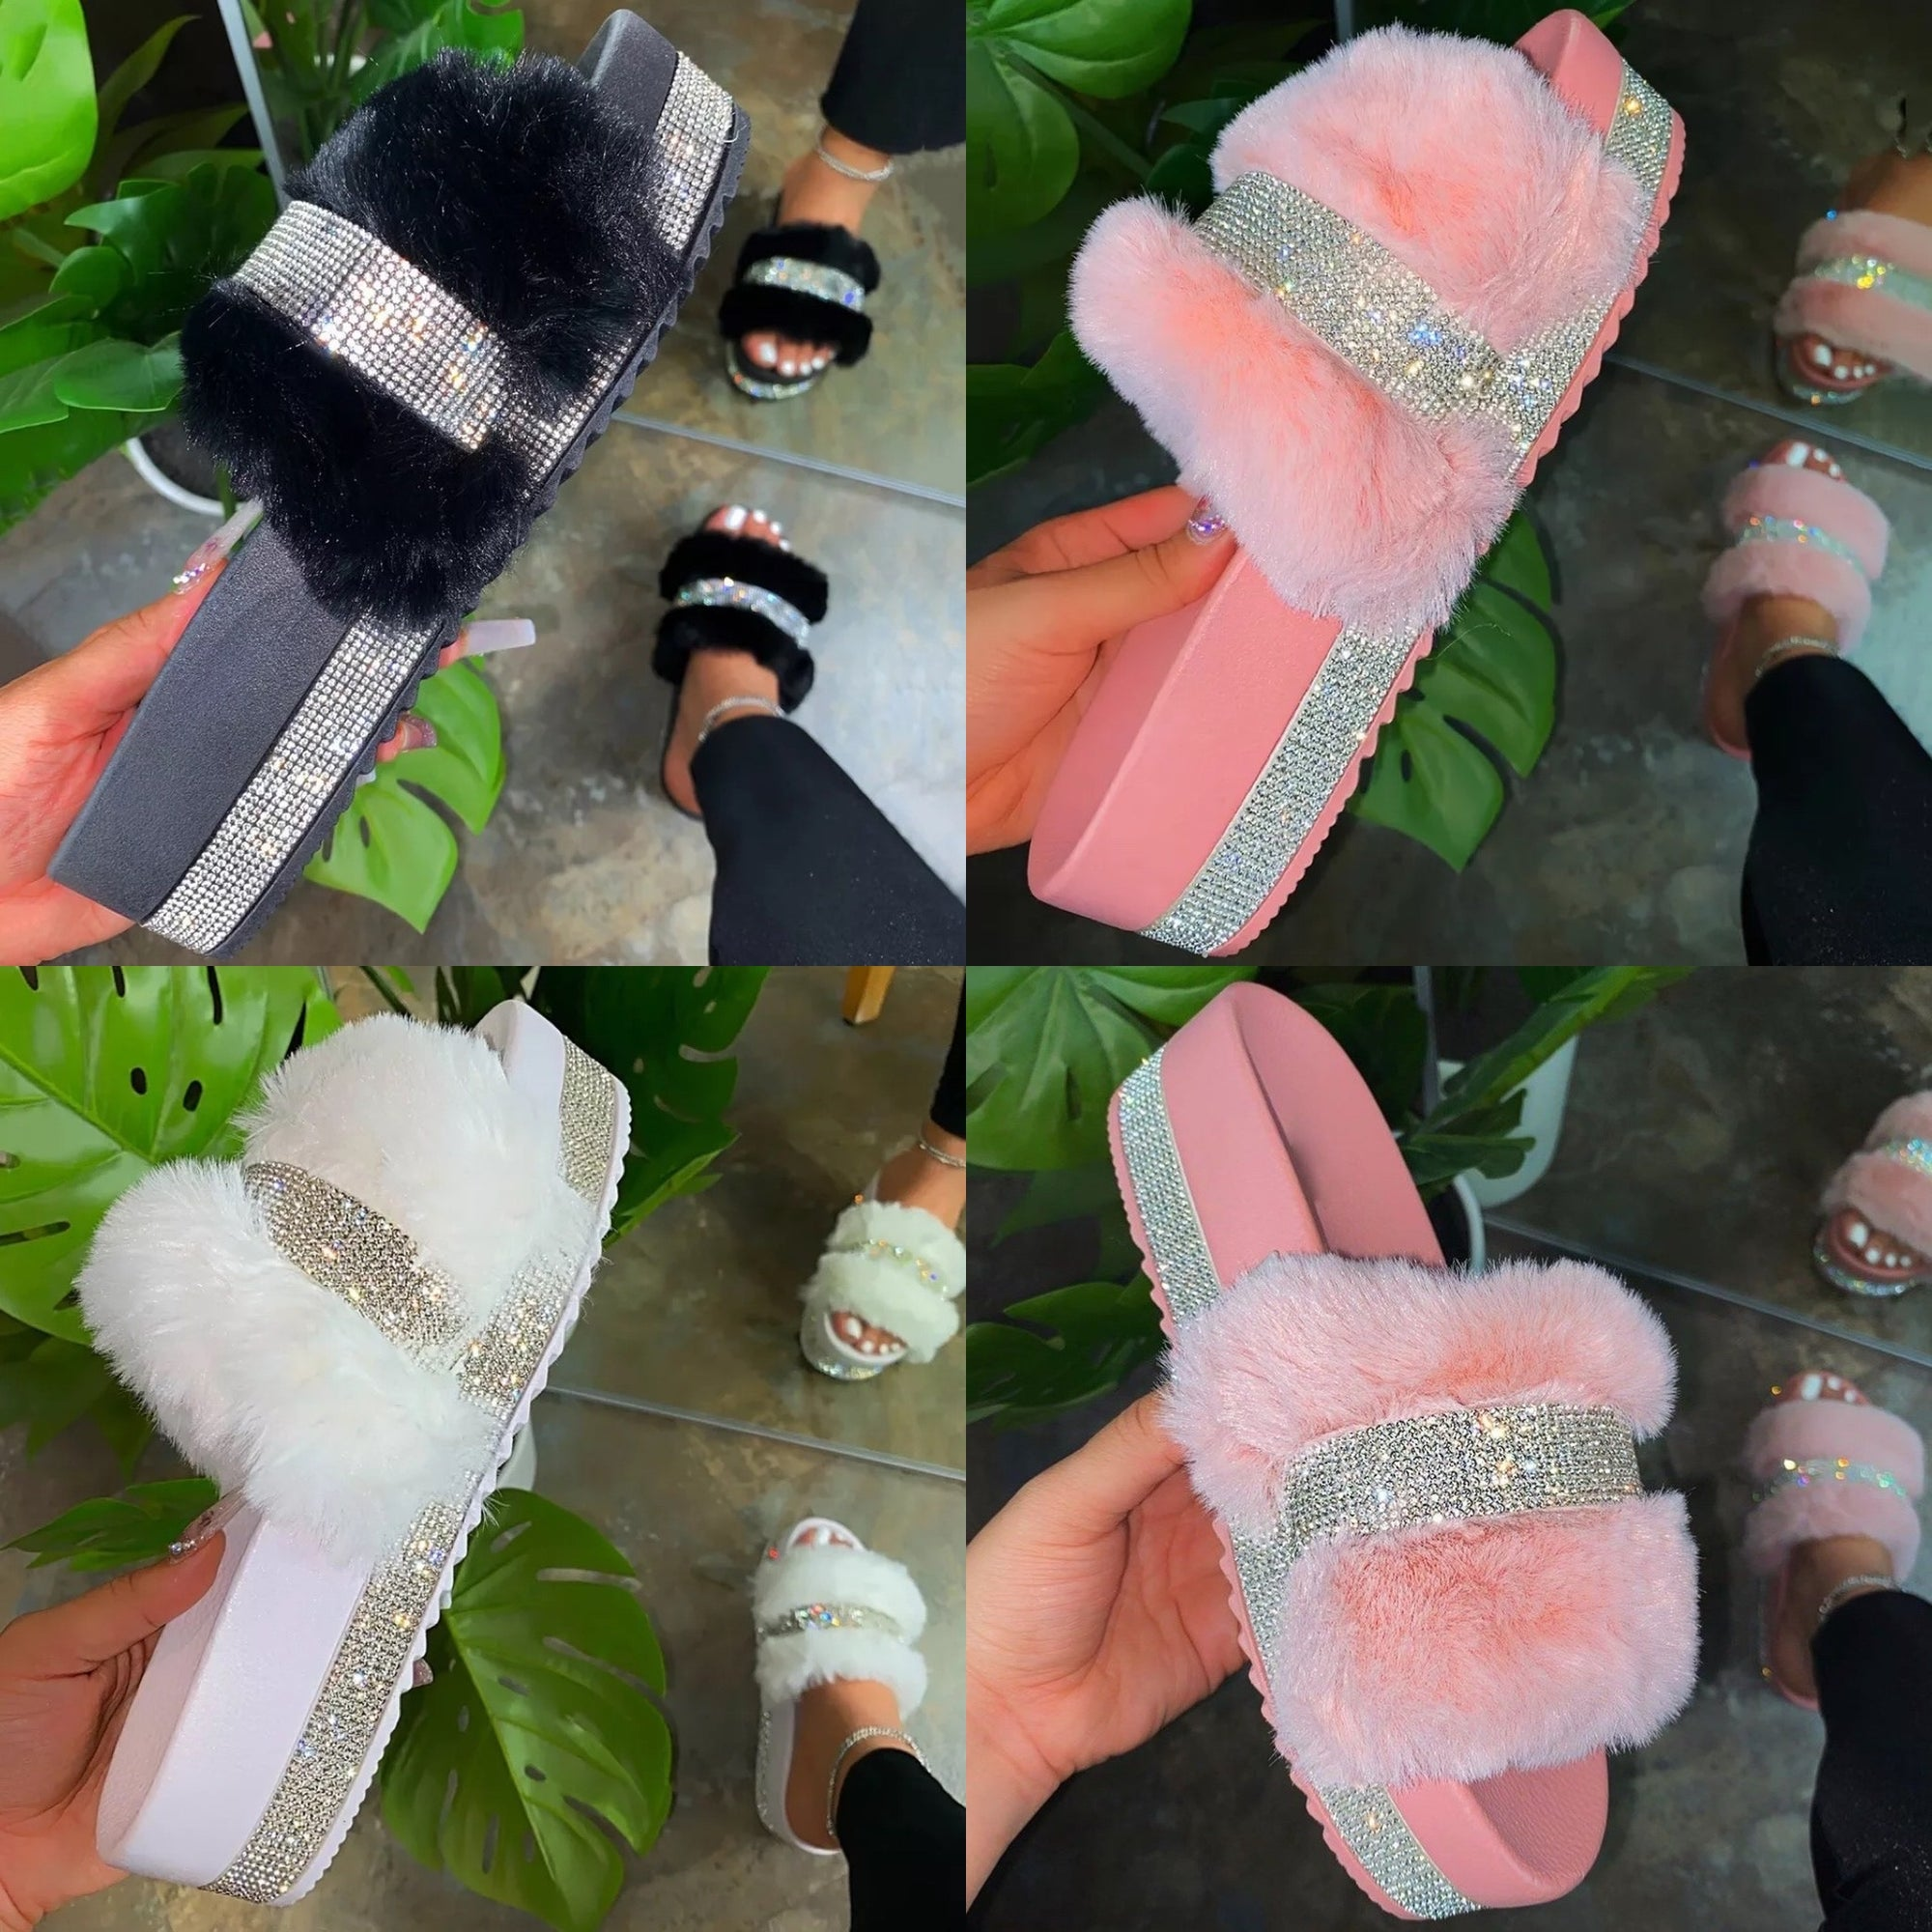 Crystal Fur Platform Sandals Crystal Fur Platform Sandals - Soo FluffySHOES Soo Fluffy Pink / UK 4 / US 6 / EU 37